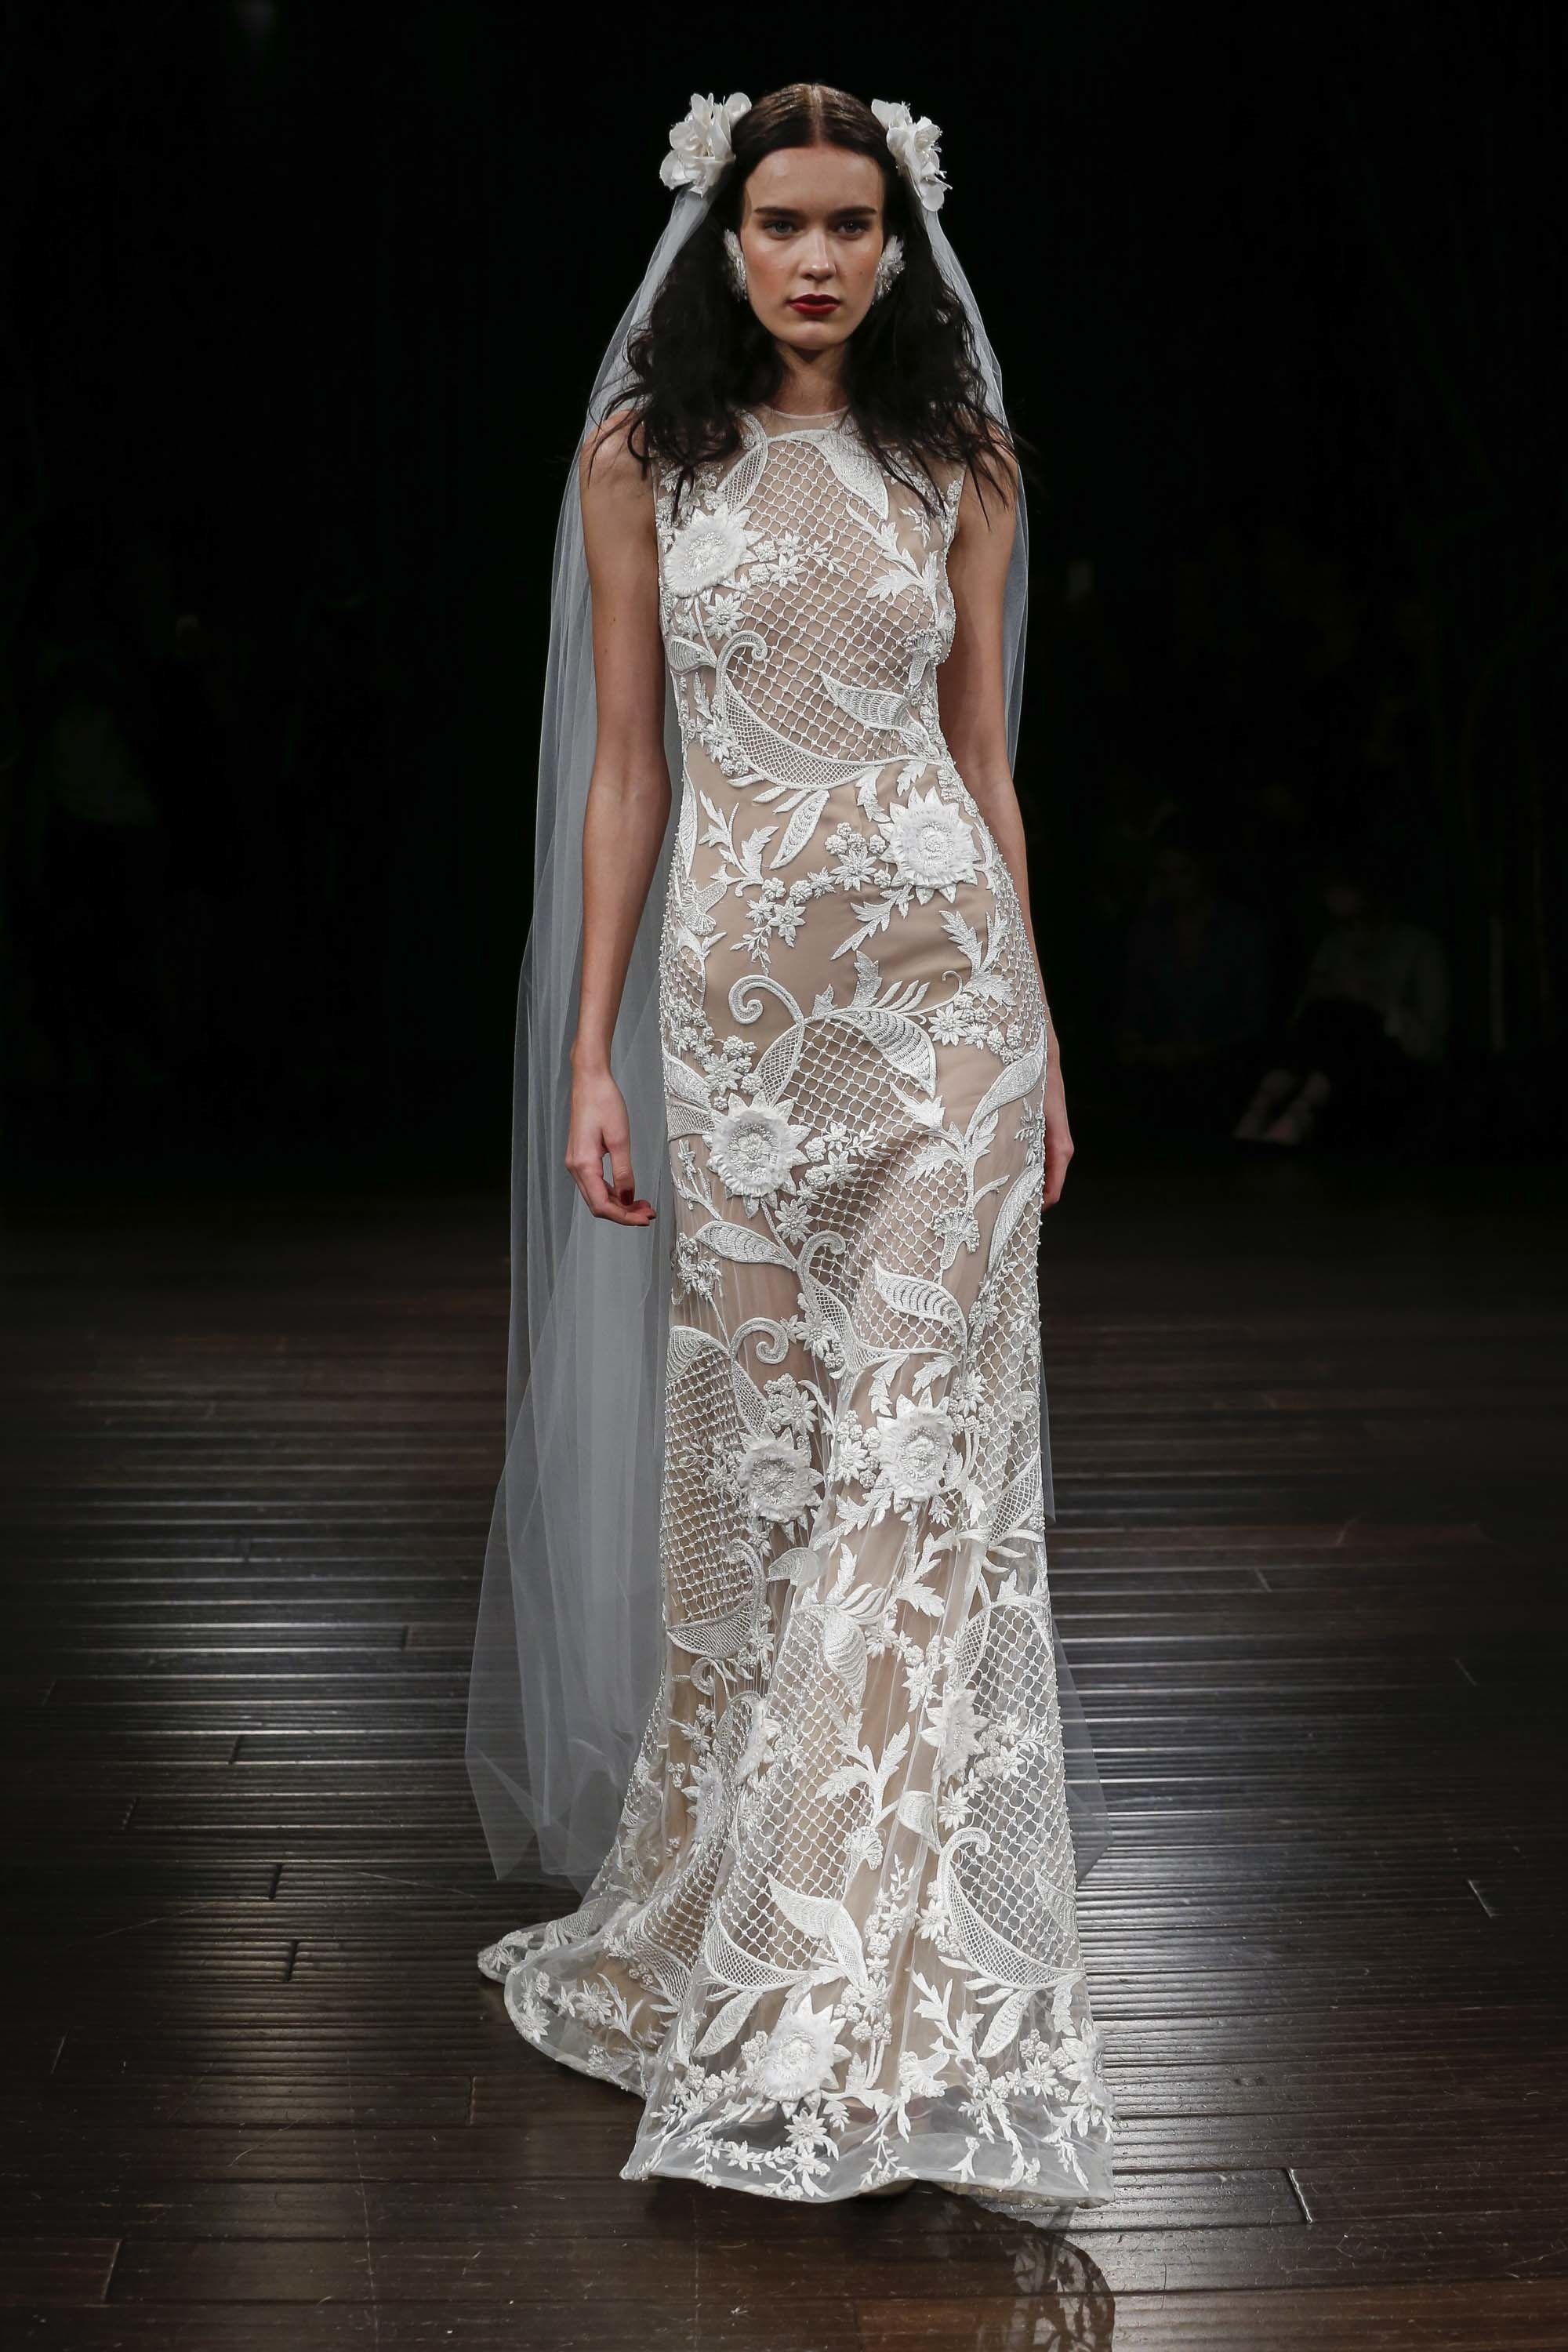 LOVE FIND CO. // The hottest bridal gown trends of 2016 - Naeem Khan // Follow @lovefindco on Instagram & Pinterest